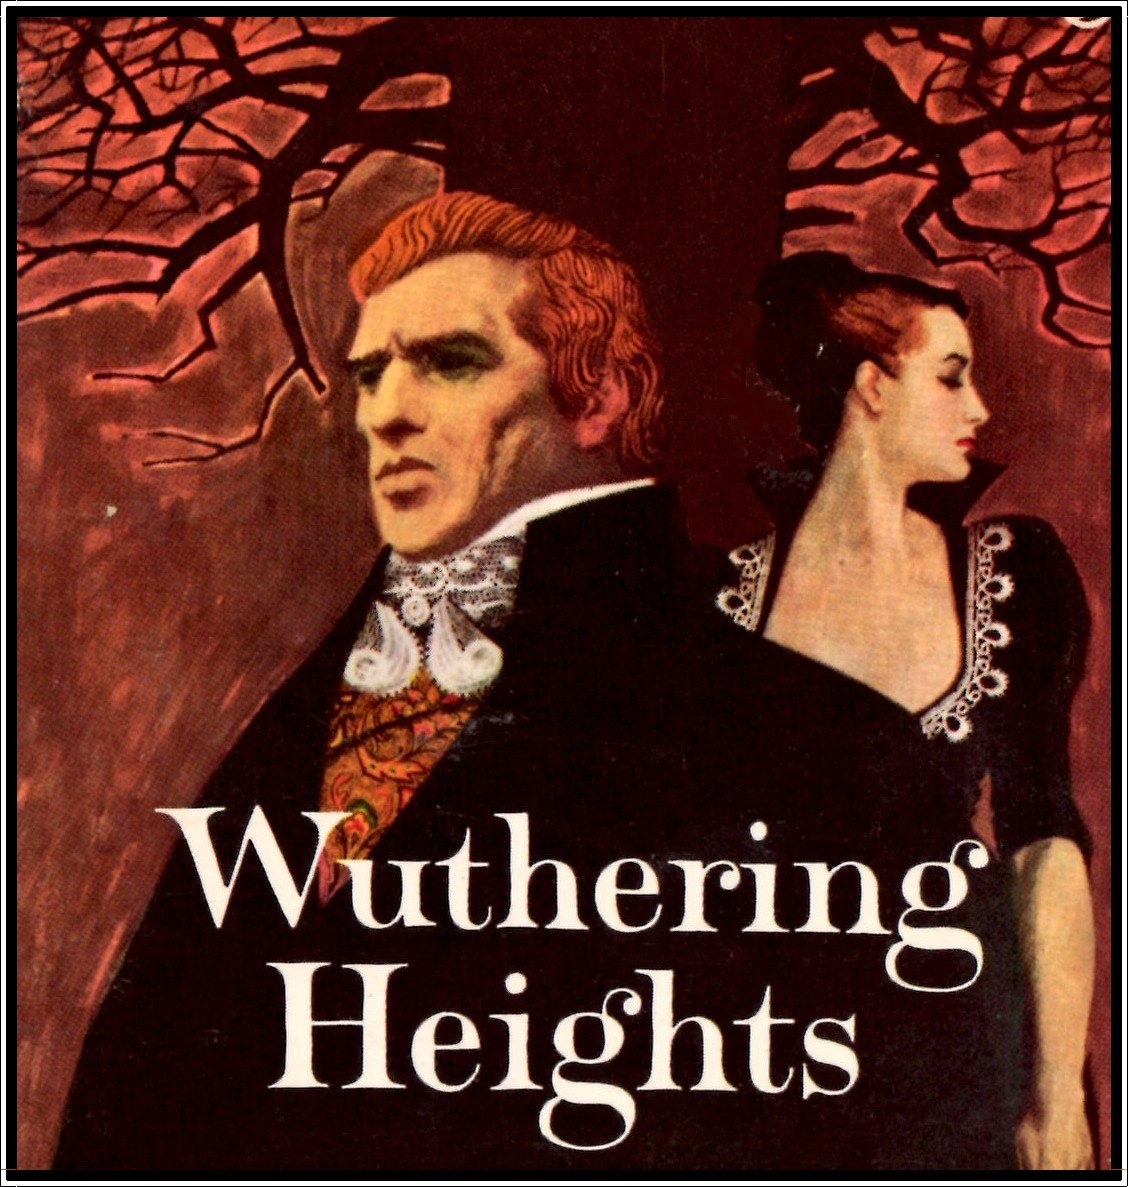 an analysis of wuthering heights by emily bronte